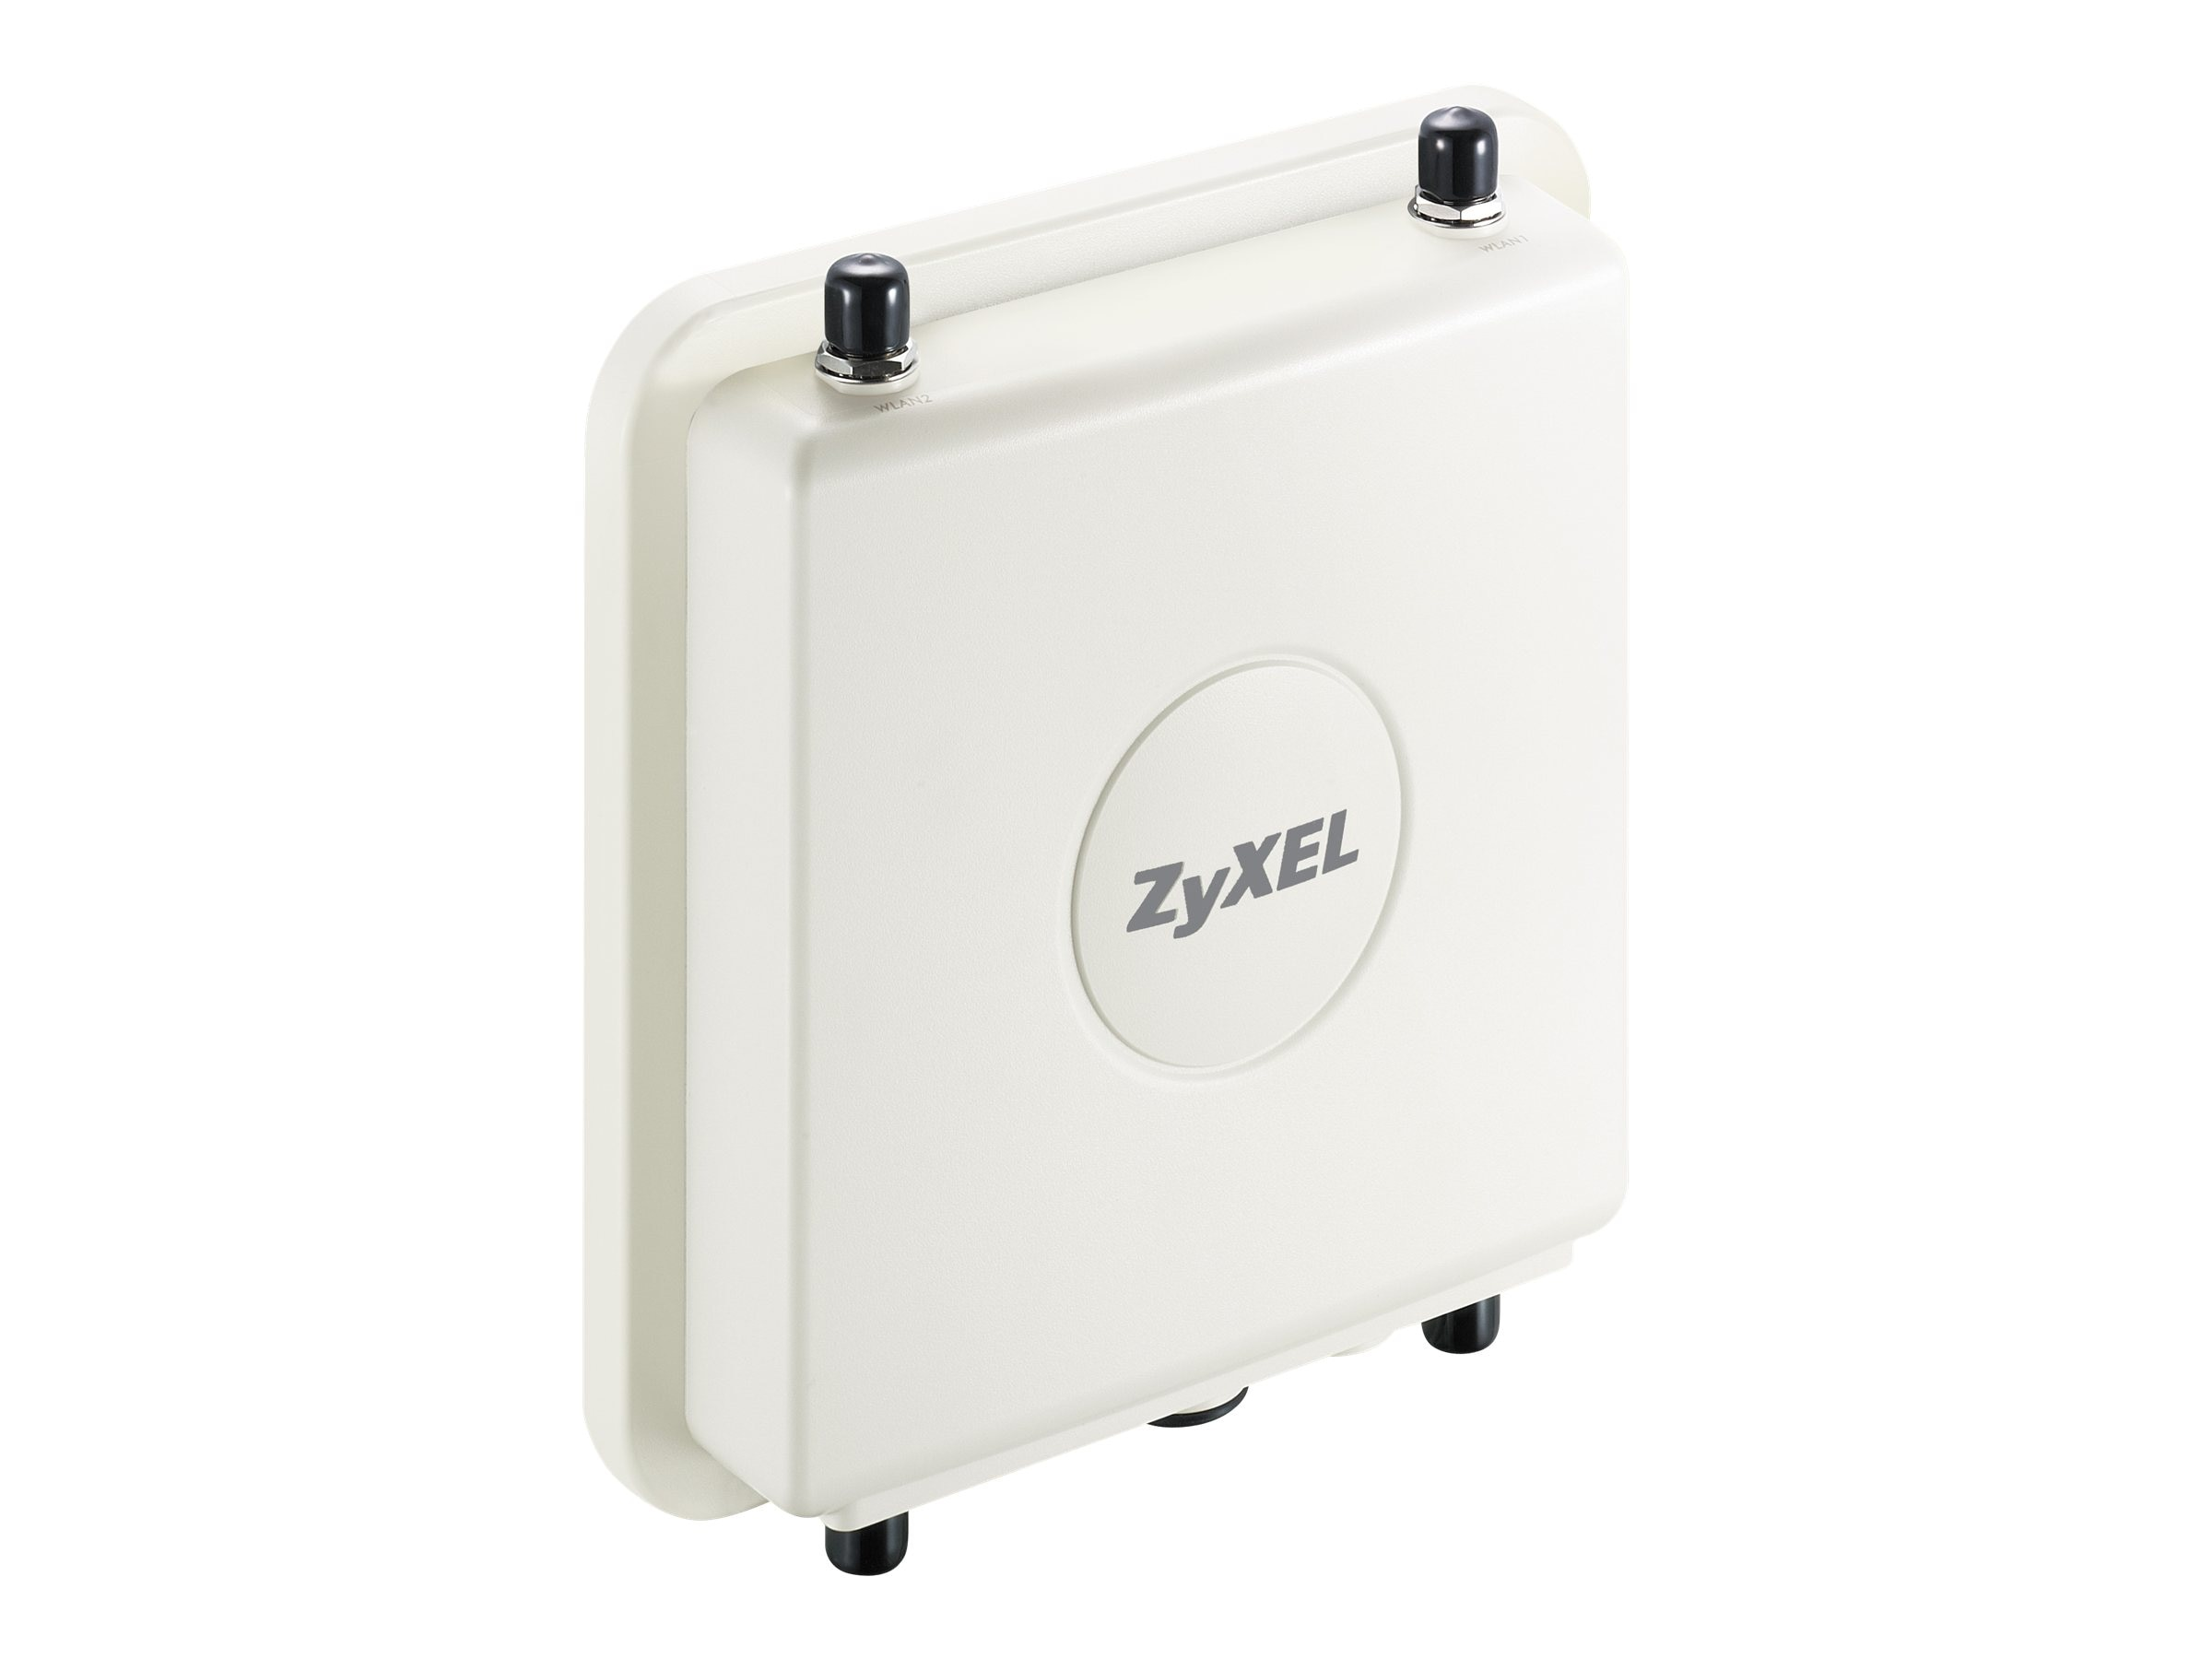 Zyxel NWA3550N 2.4 5GHz Outdoor Dual Radio Access Point, NWA3550N, 13764763, Wireless Access Points & Bridges